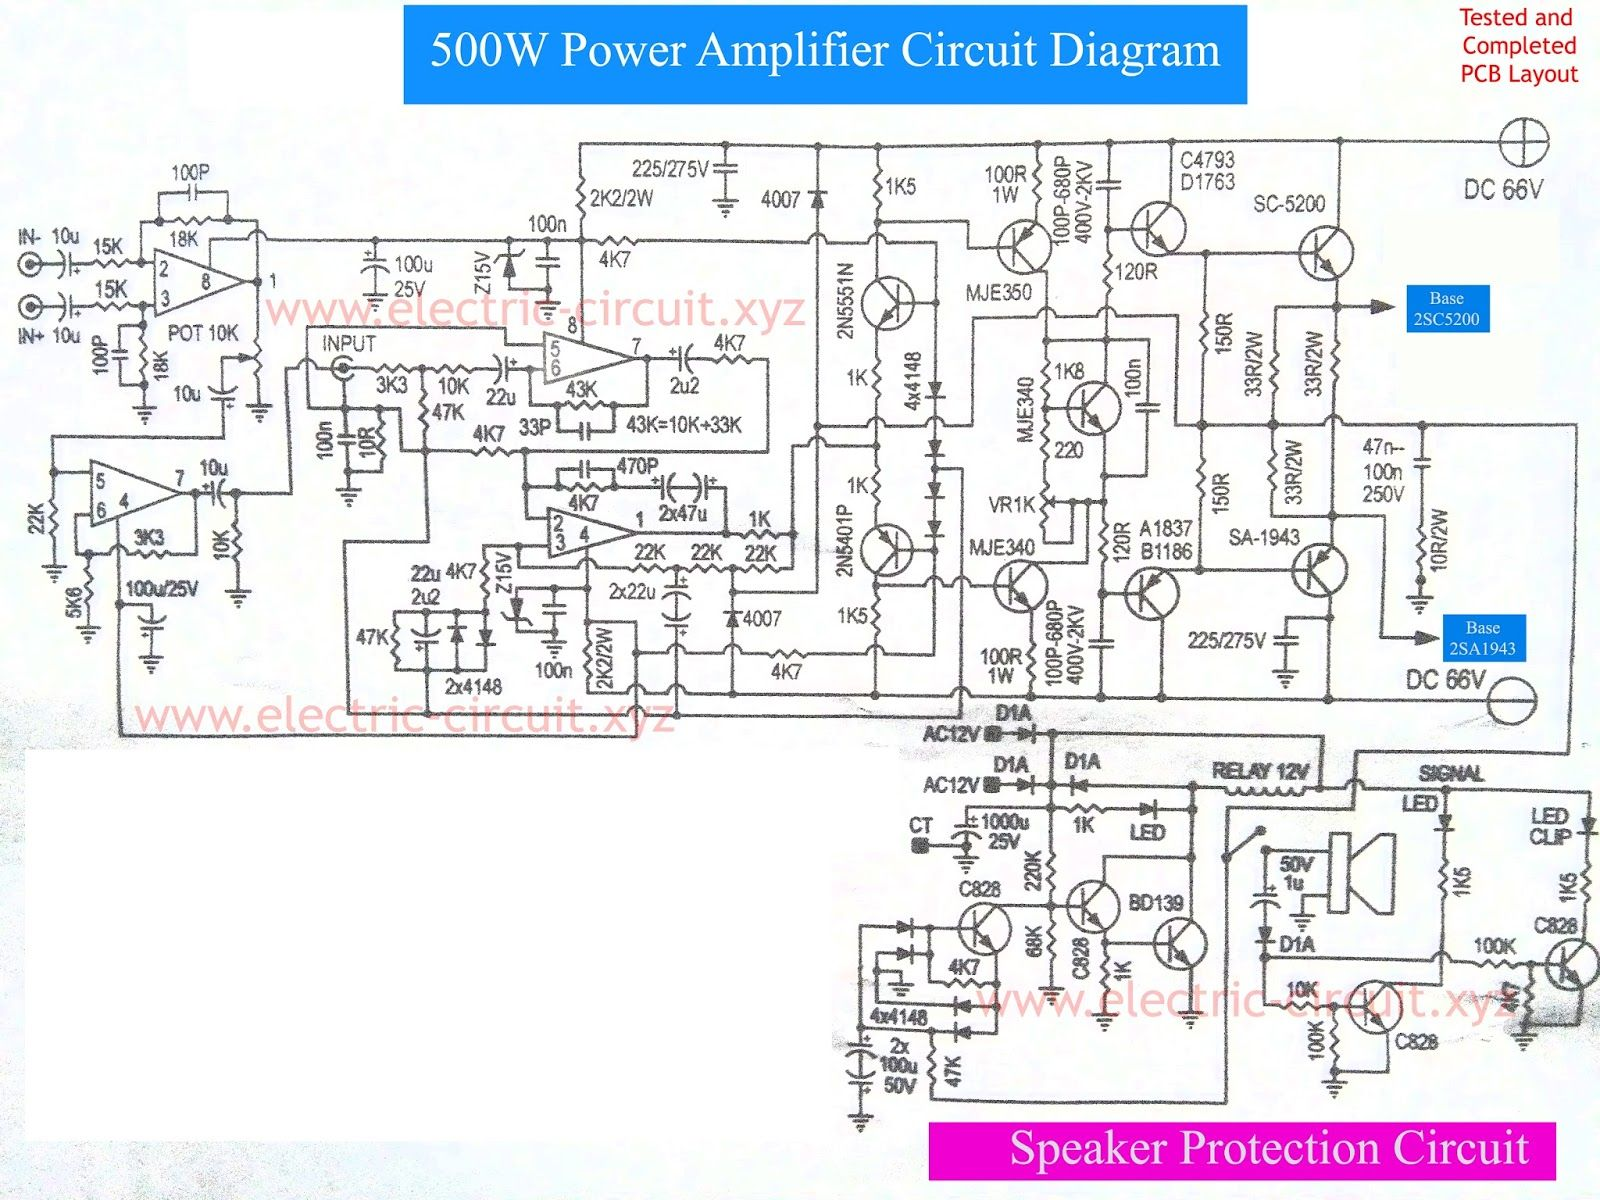 medium resolution of power amplifier 500w with speaker protection circuit diagram